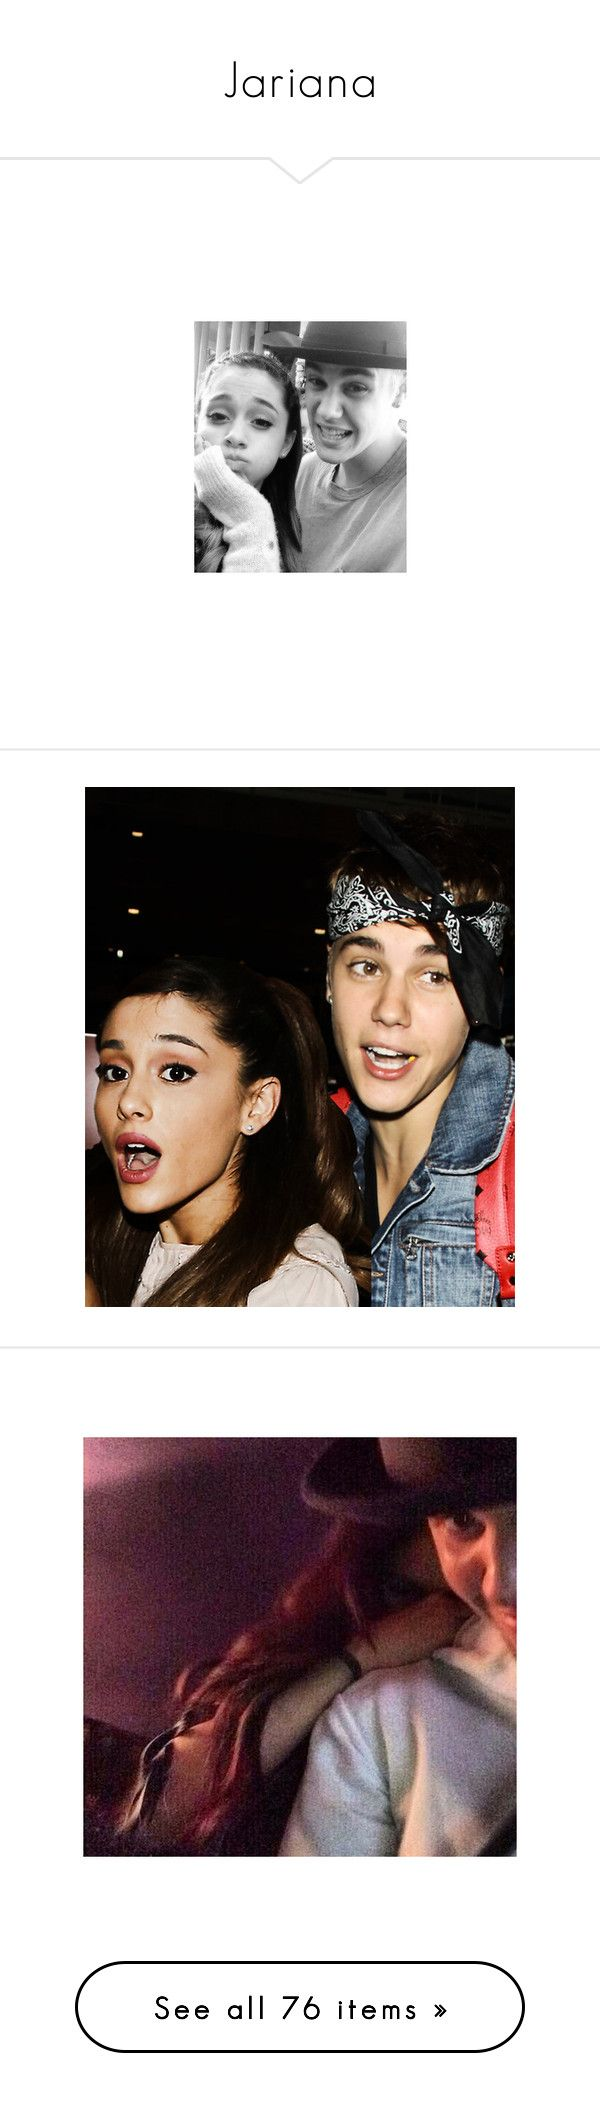 """""""Jariana"""" by pxngxin ❤ liked on Polyvore featuring ariana grande, jariana, manips, ariana, ariana manips, justin bieber, justin & ariana and couples"""